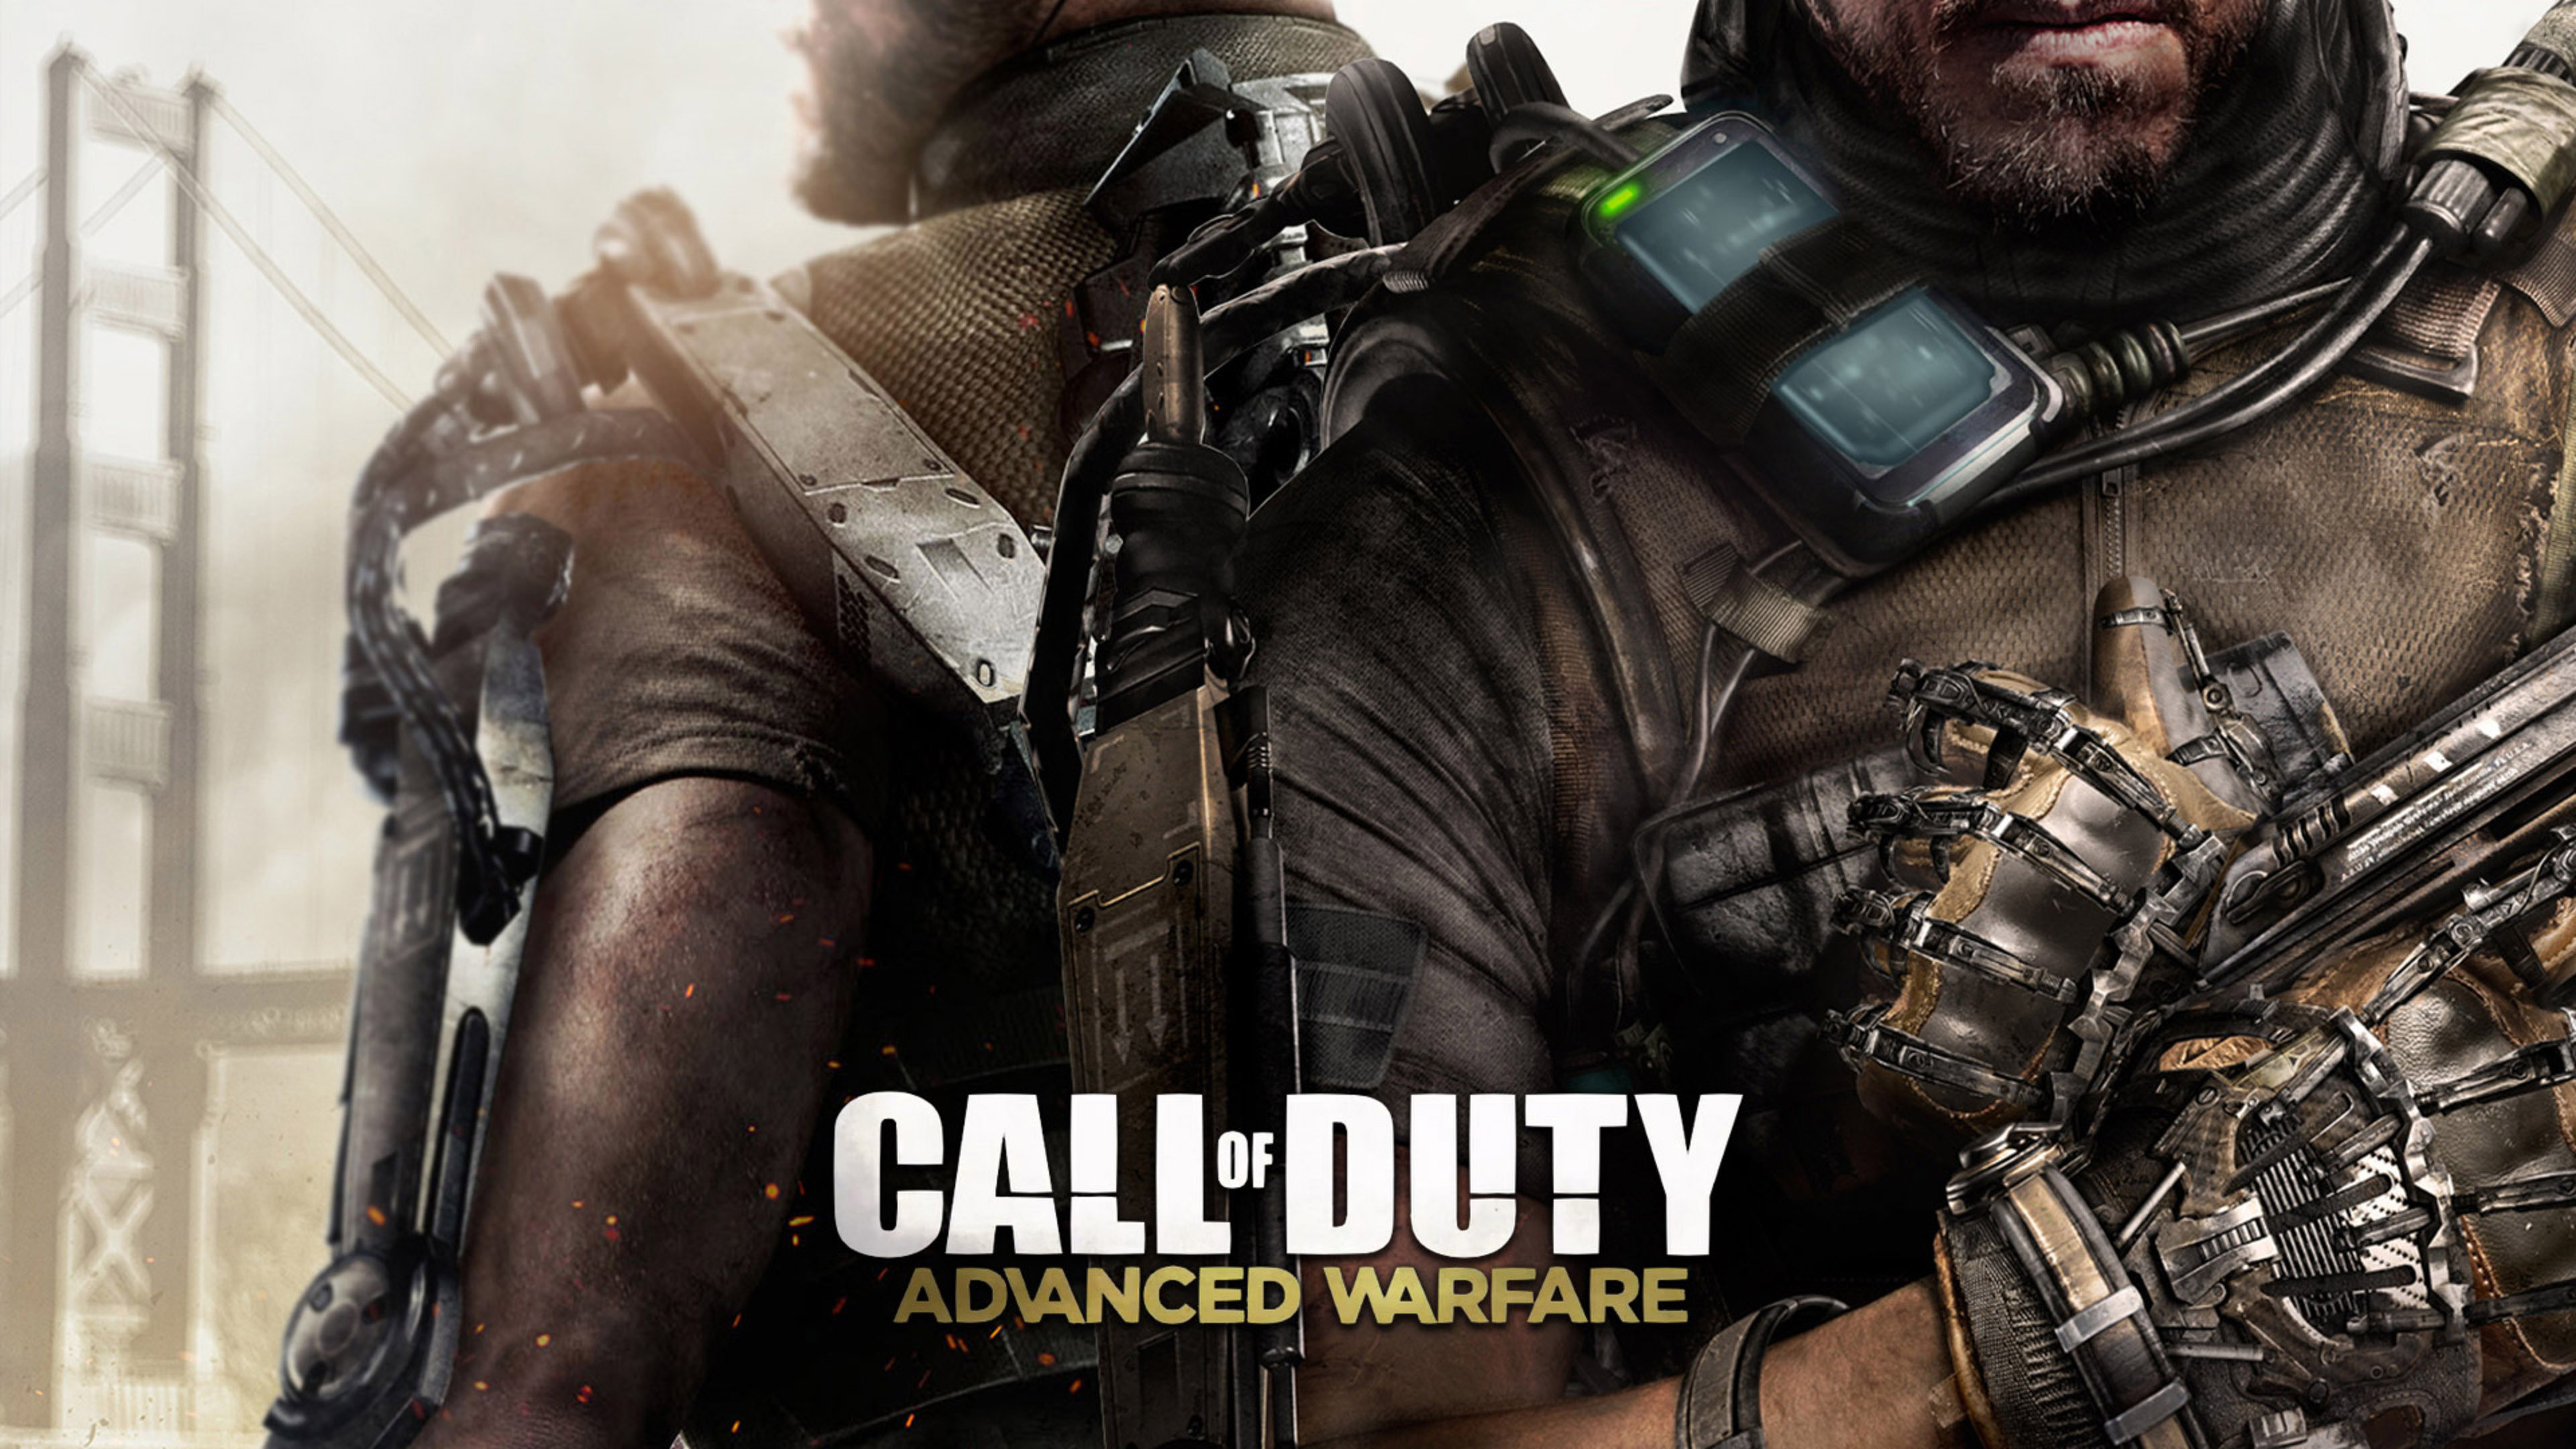 COD Advanced Warfare Gets Exo Zombies GameConnect - Call duty exo zombies trailer looks epic